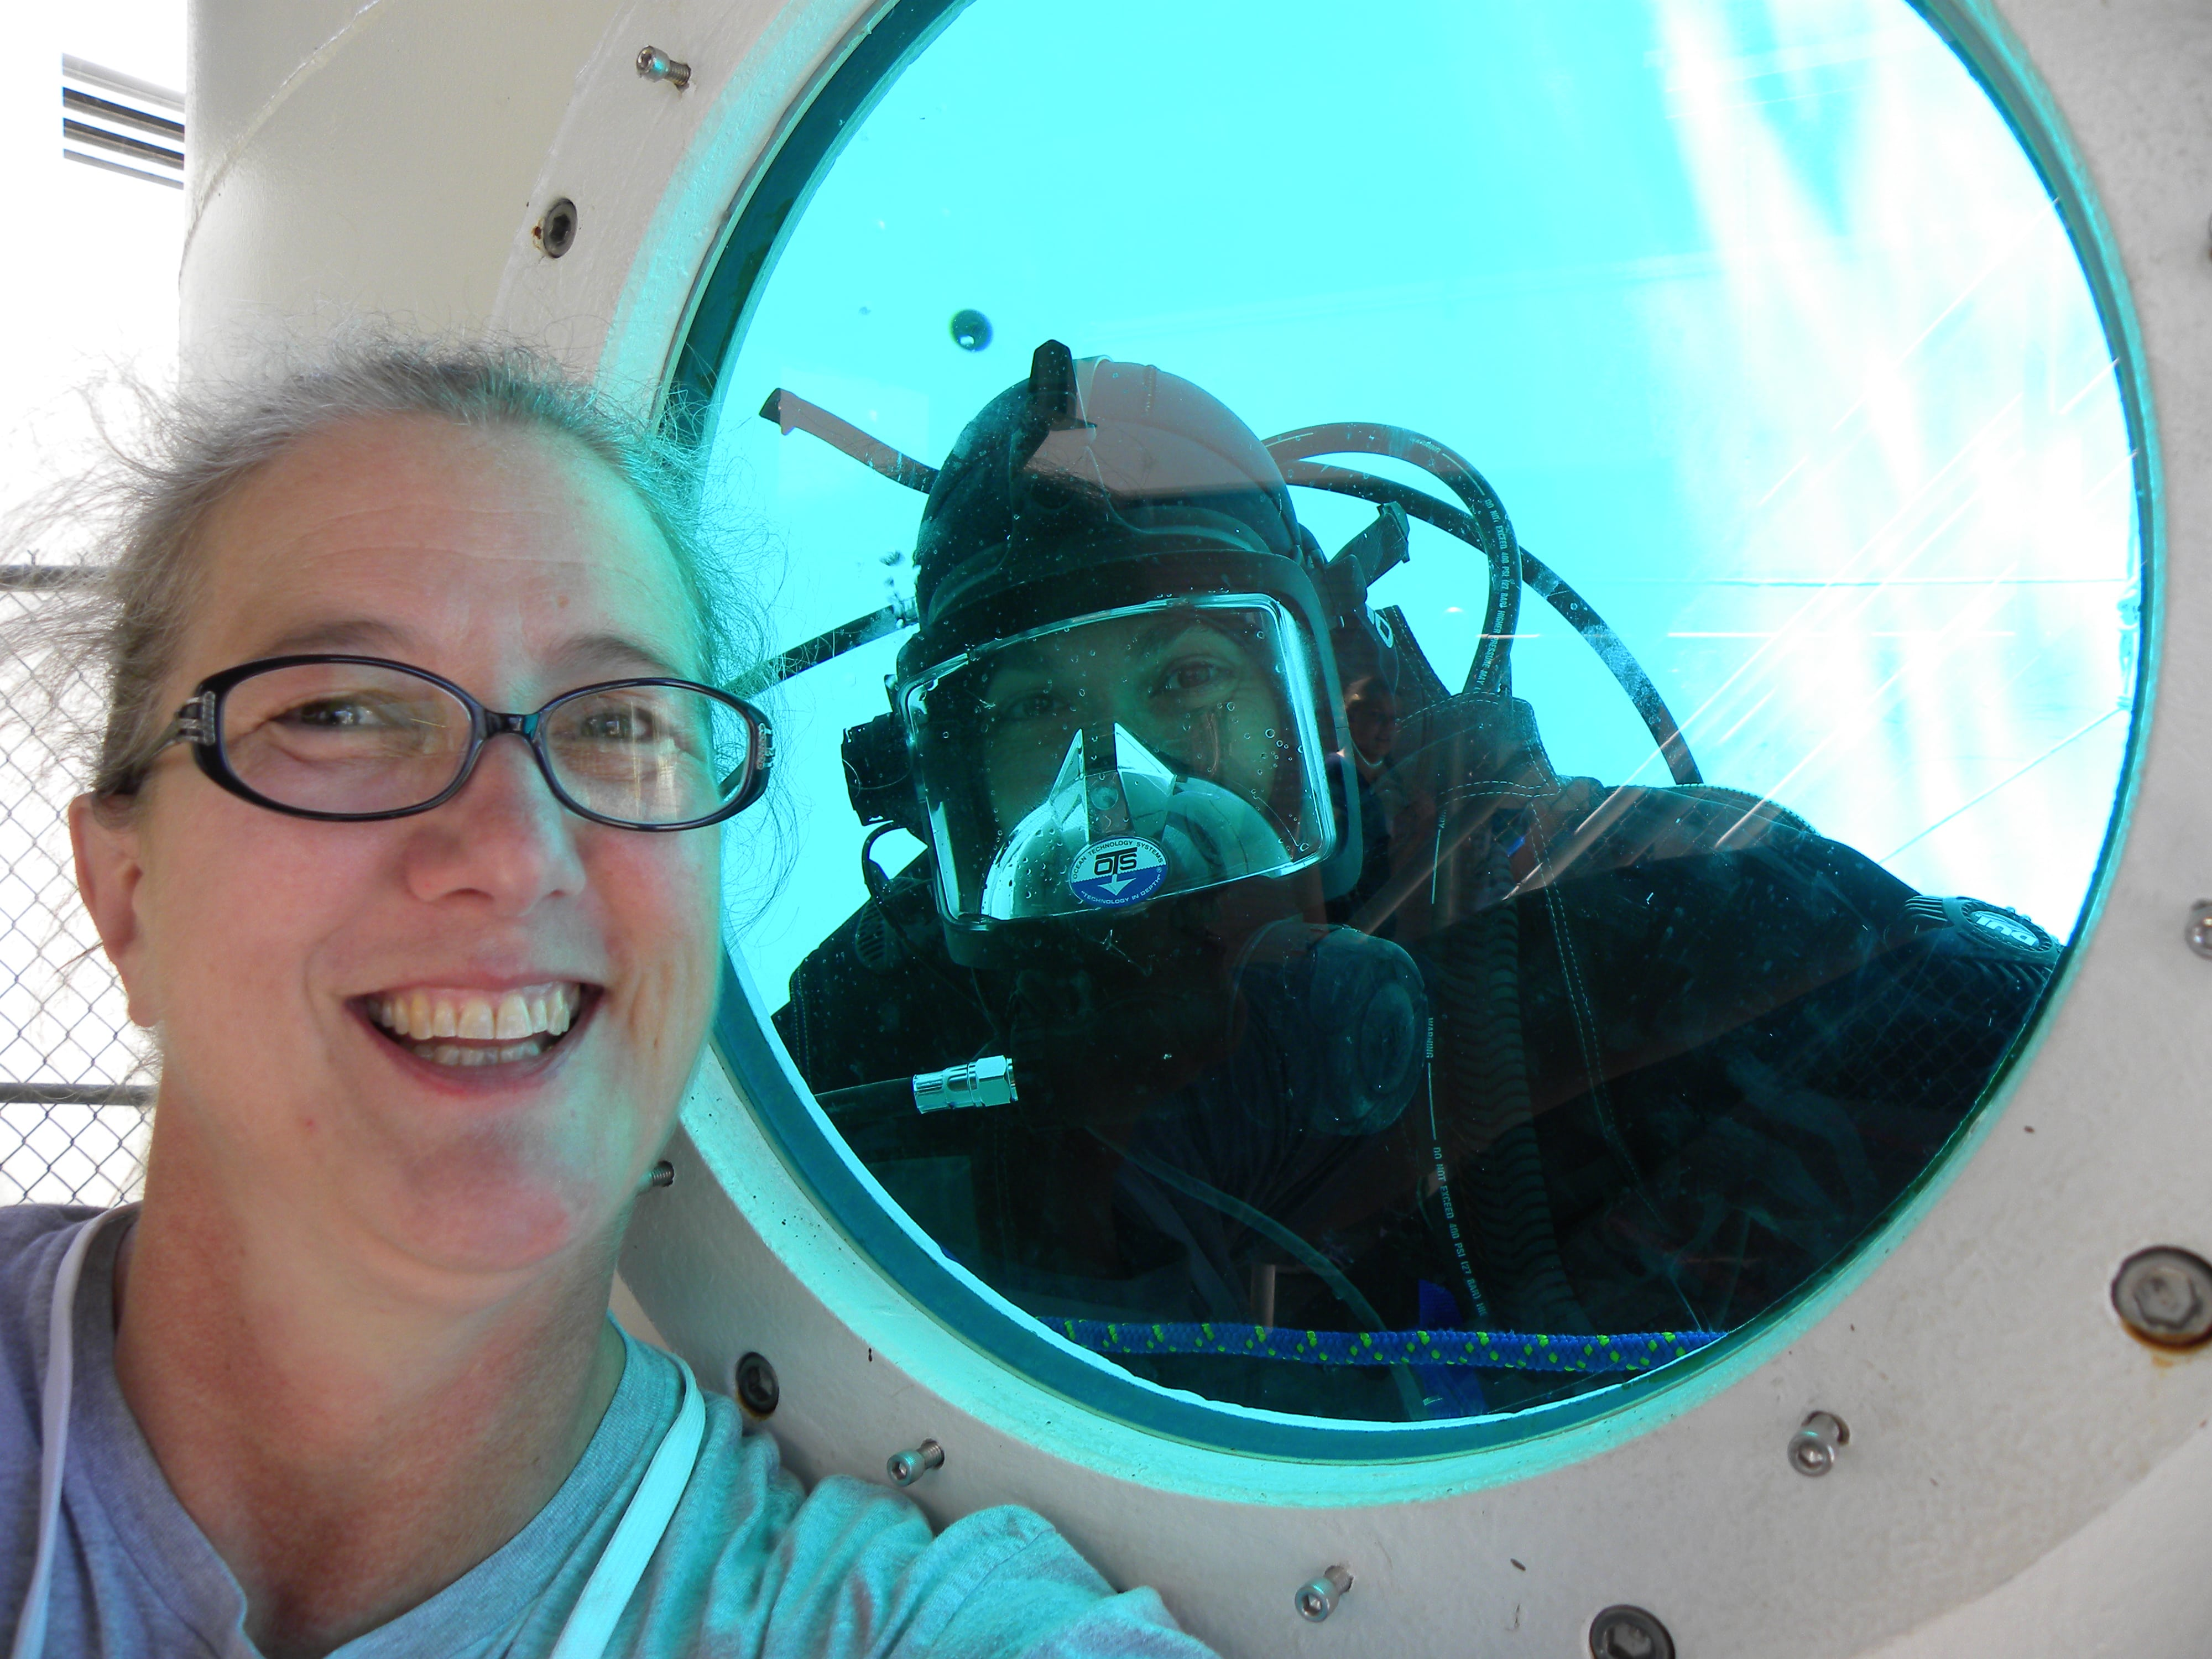 Diver in full scuba gear that the window of a training tank and educator Turtle Haste outside, selfie